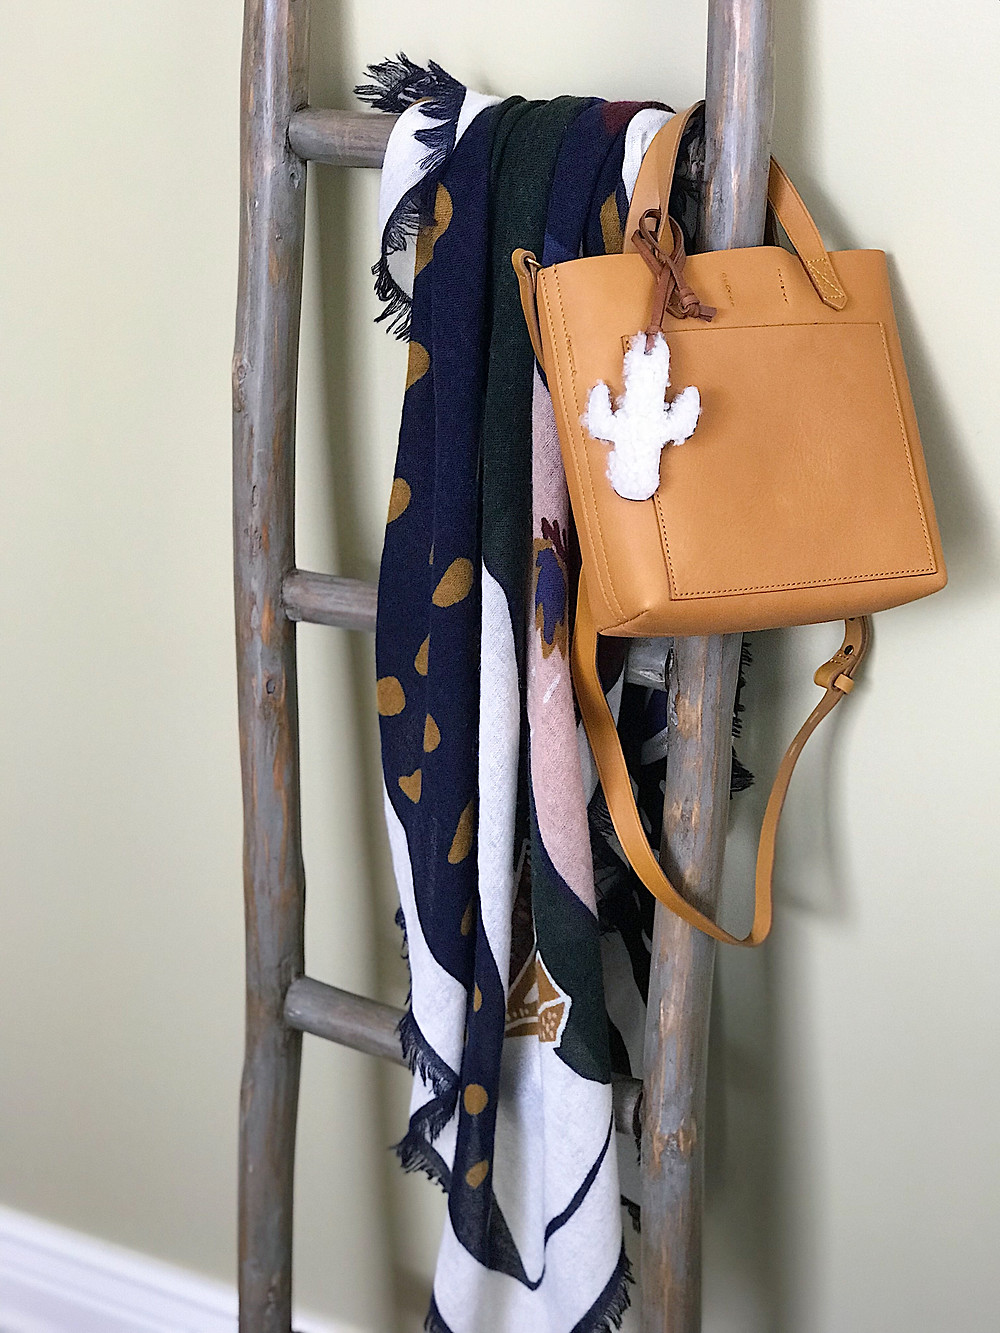 ladder, scarf, bag